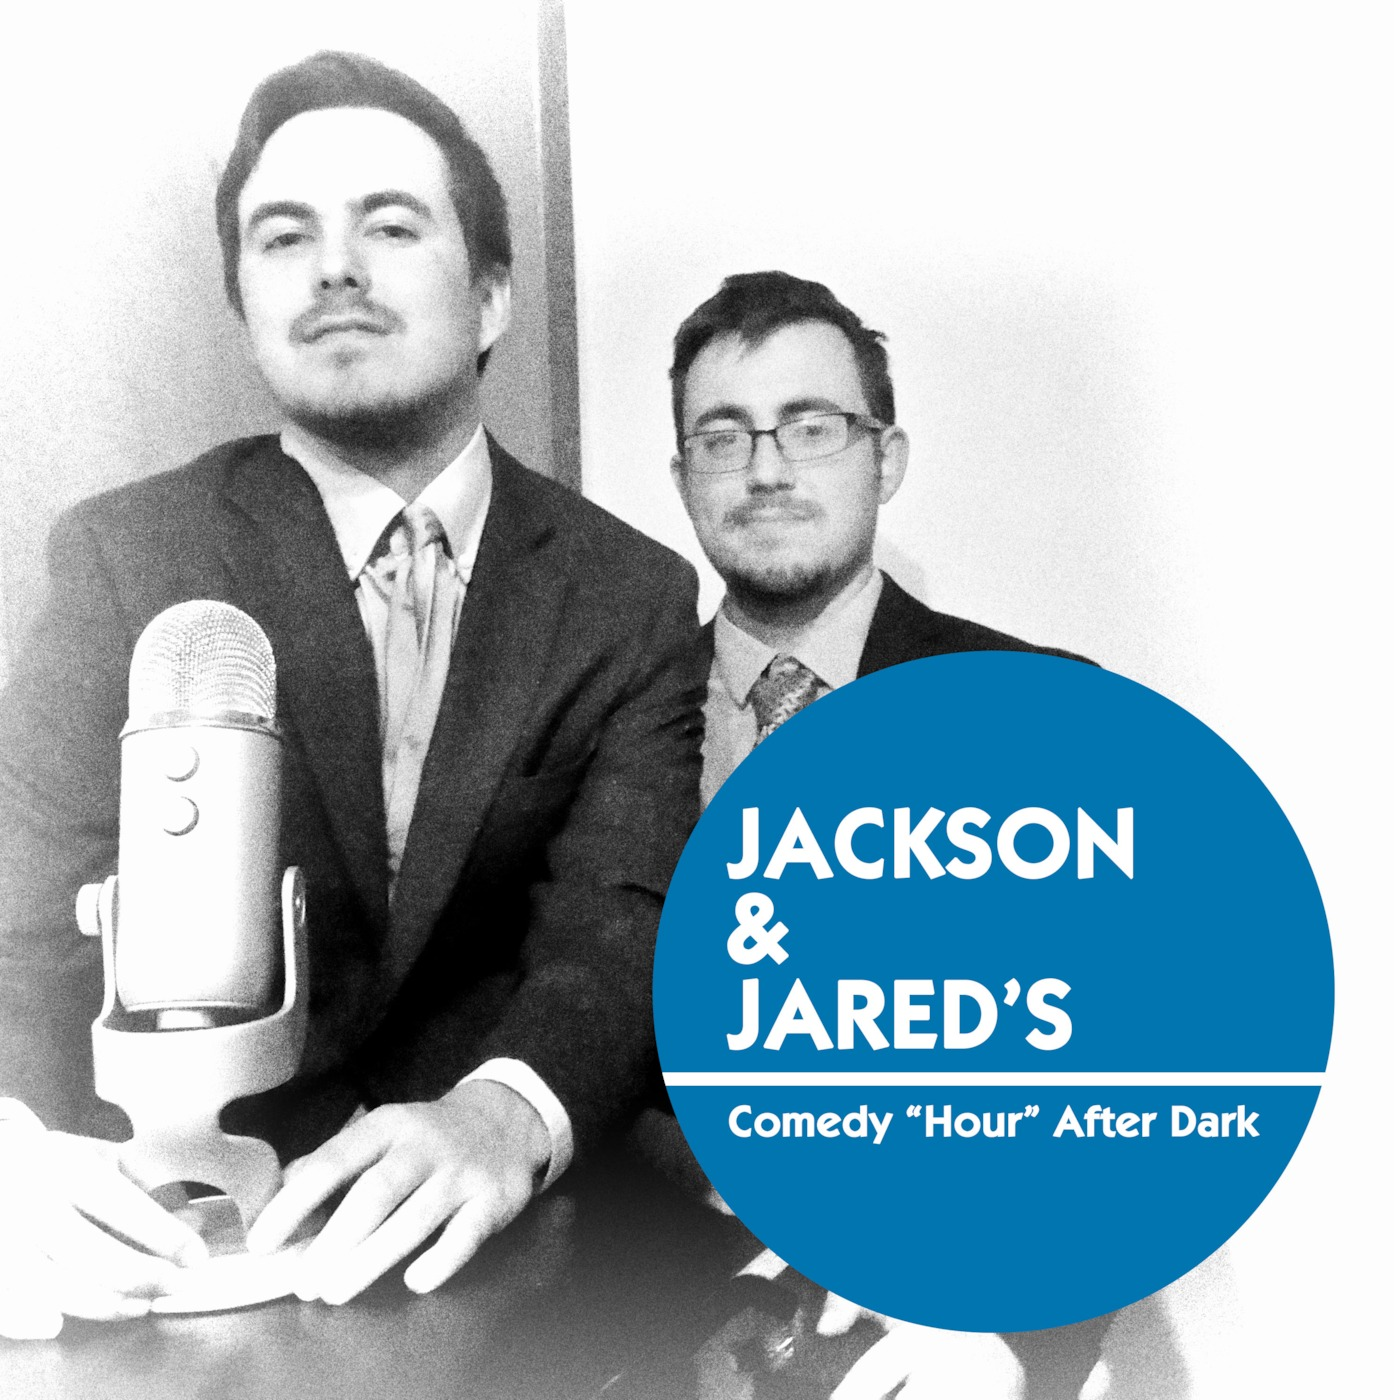 Jackson & Jared Comedy